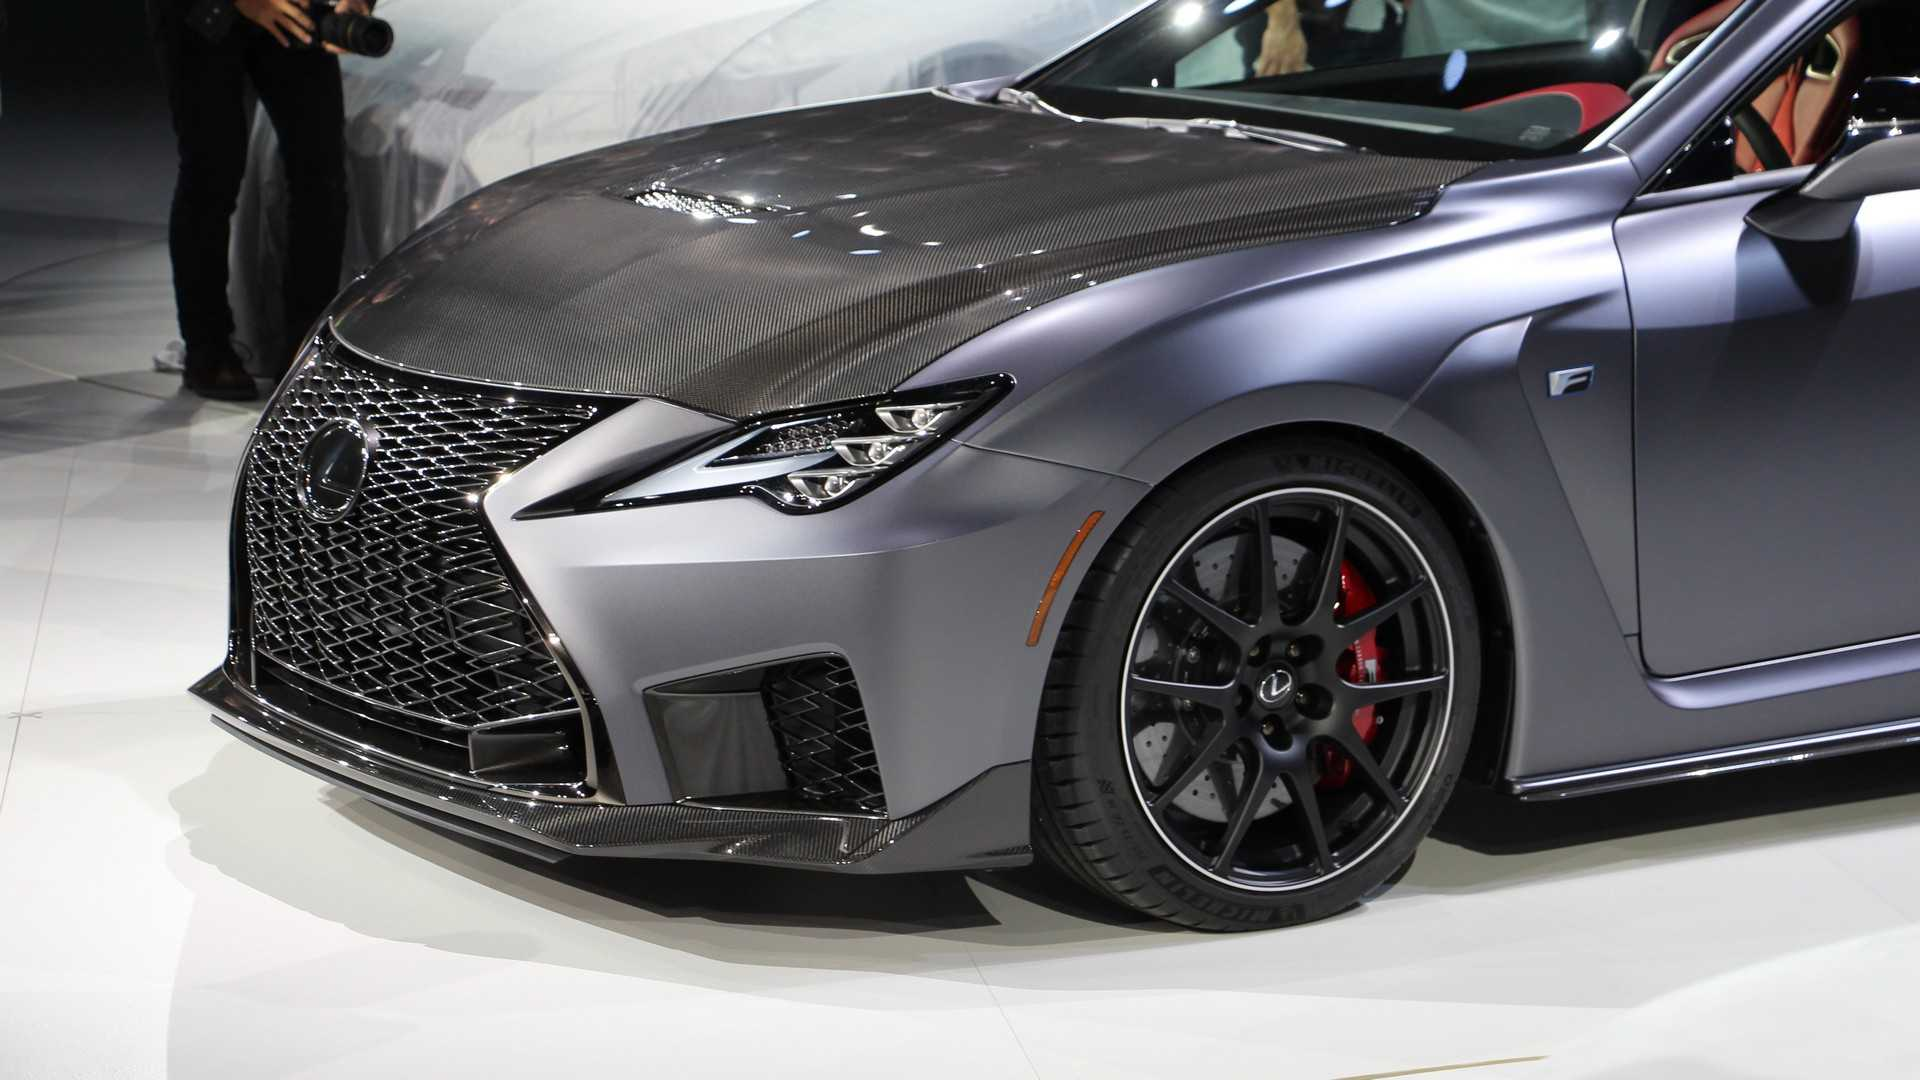 75 All New Lexus Rc F 2020 Price Photos by Lexus Rc F 2020 Price